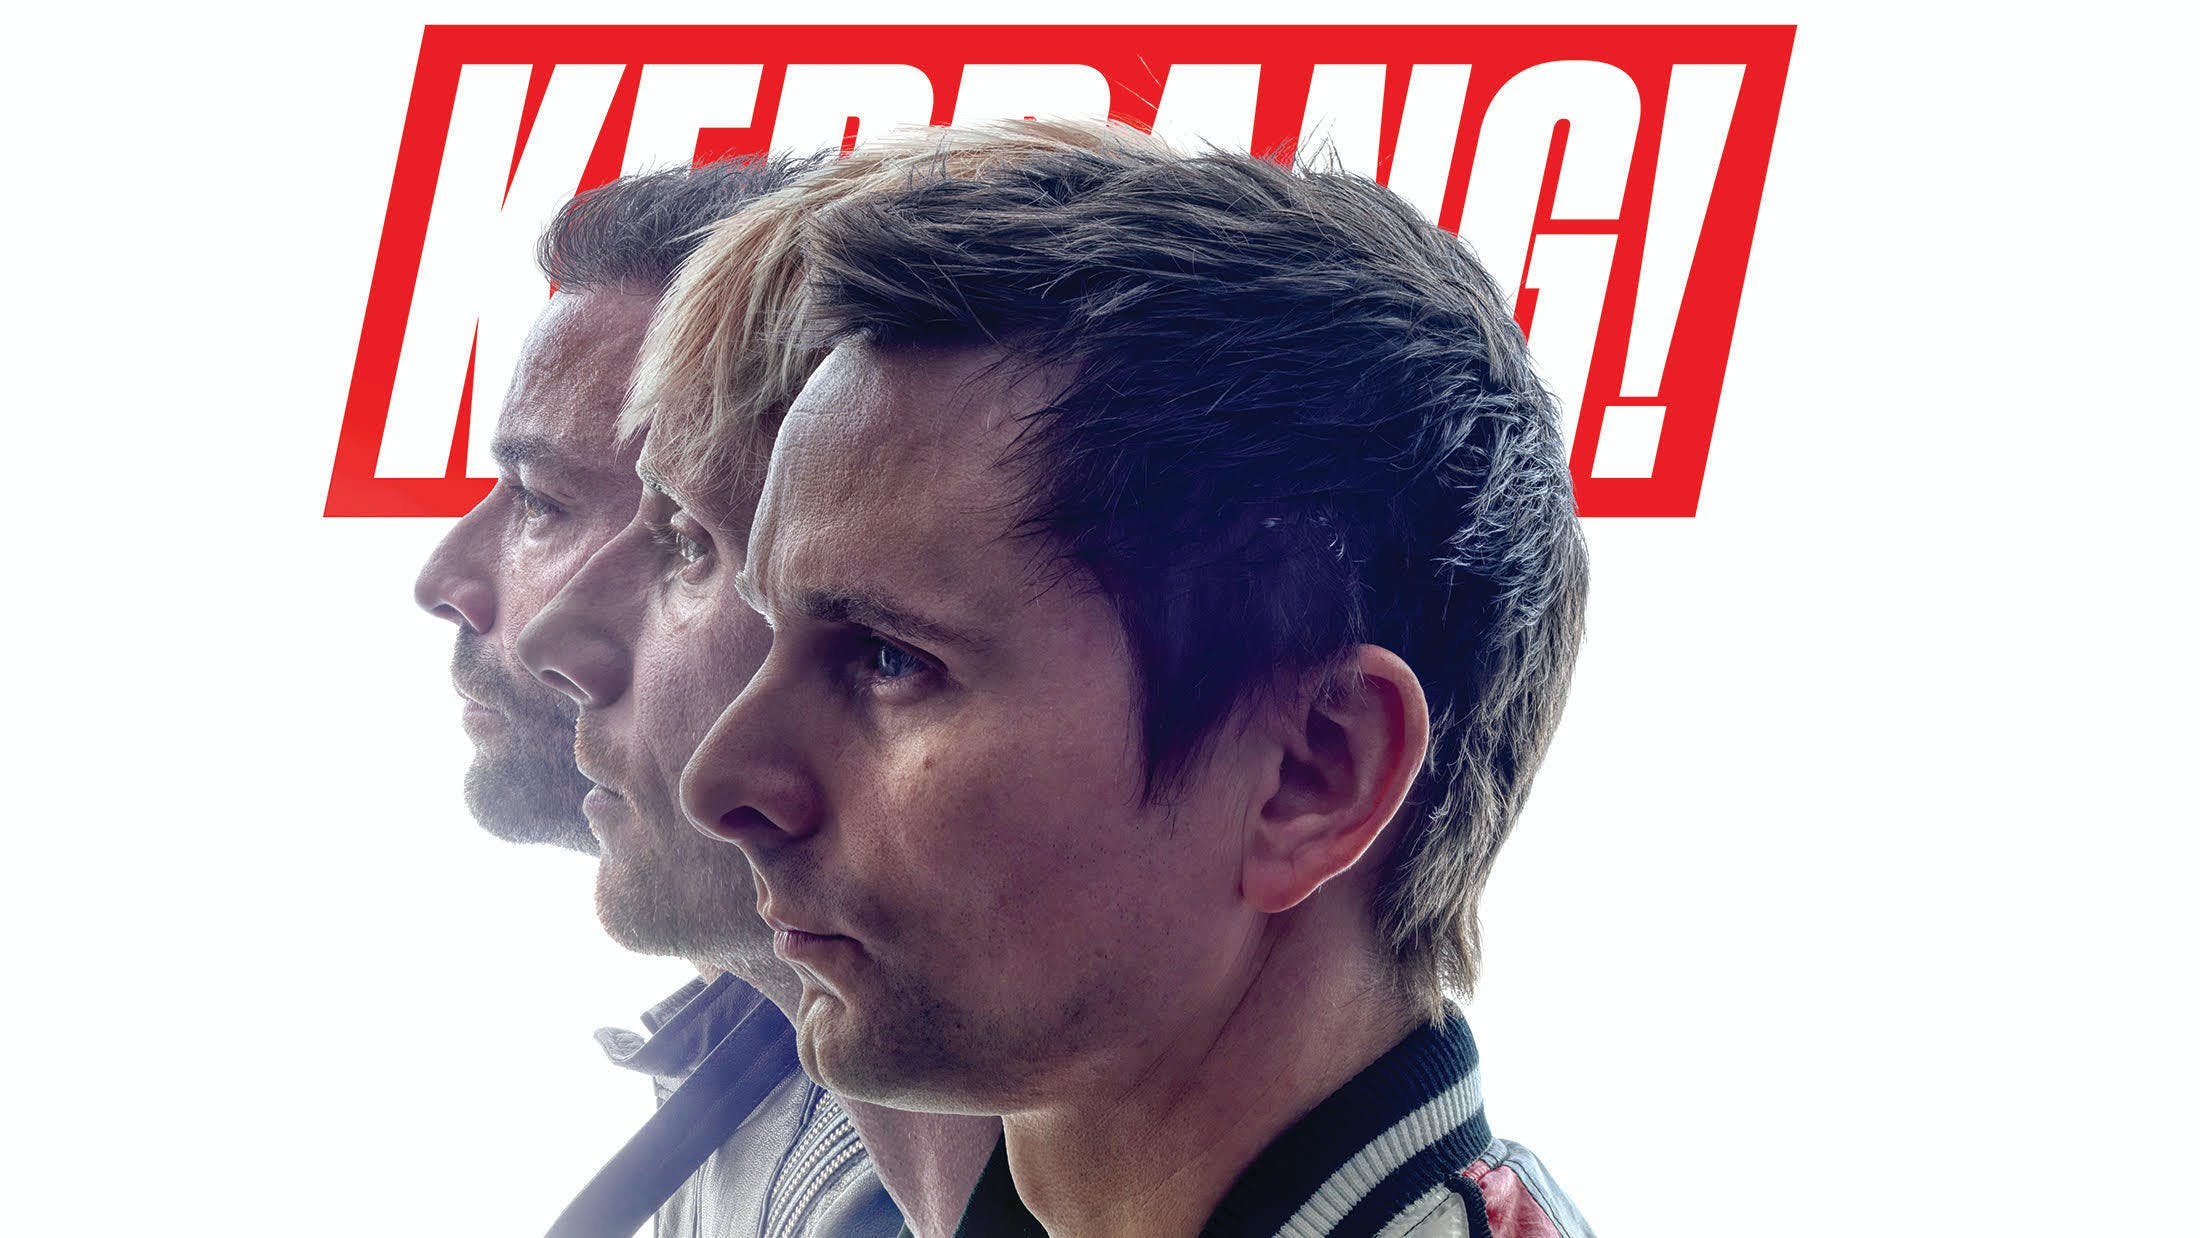 K!1746 – Muse: Matt Bellamy's Search For Reality